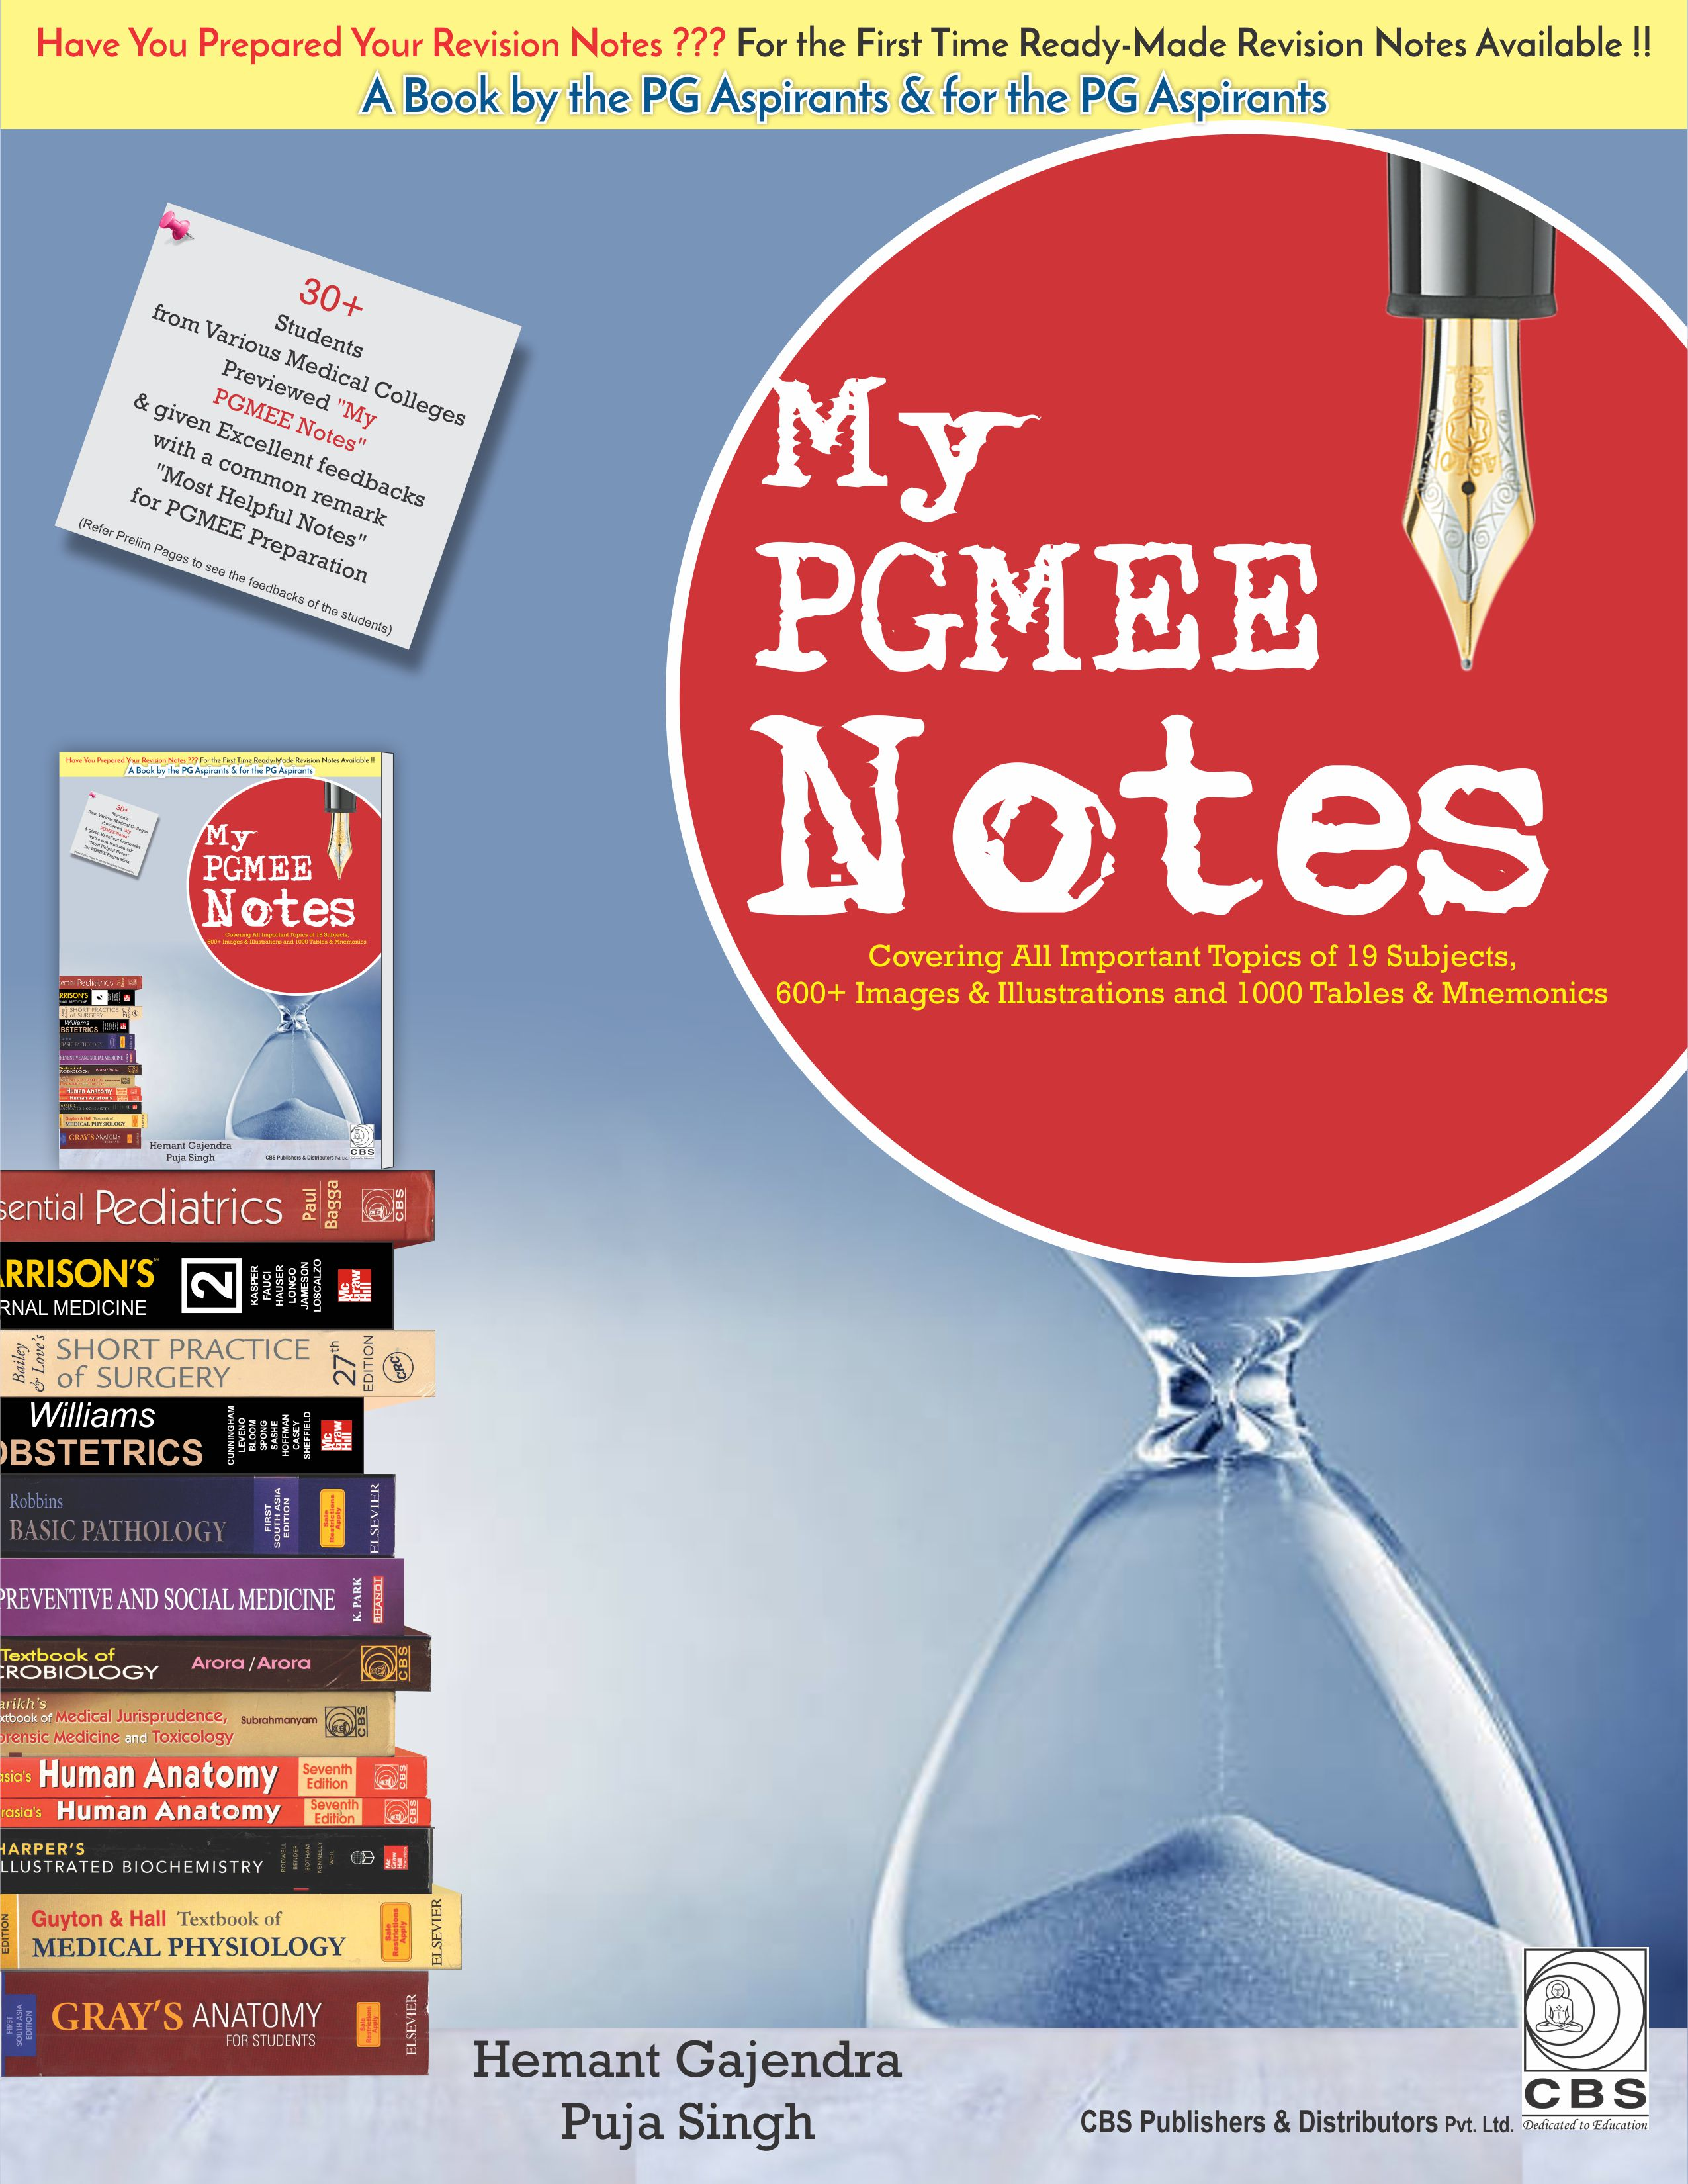 Buy My Pgmee Notes By Hemant Gajendra Puja Singh 1st Edition